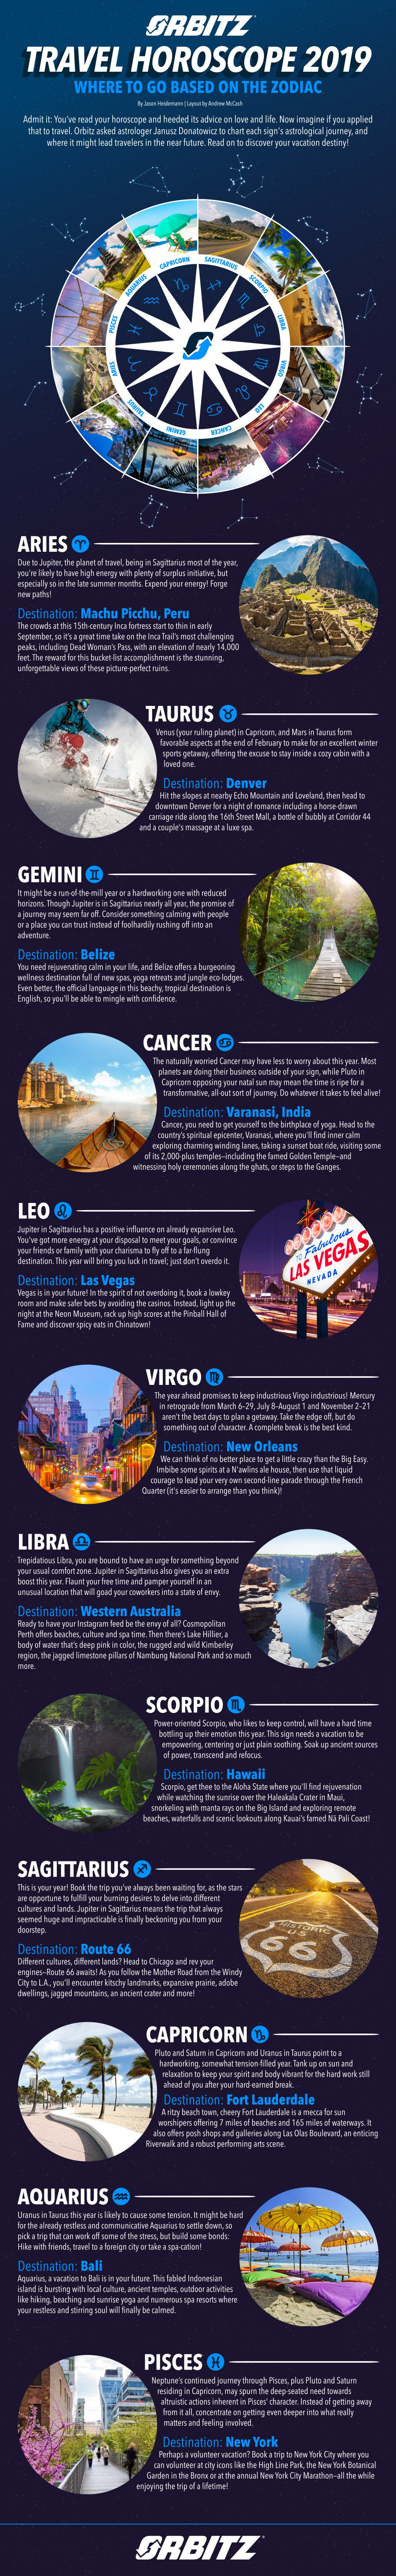 Star sign predictions: Your 2019 travel horoscope